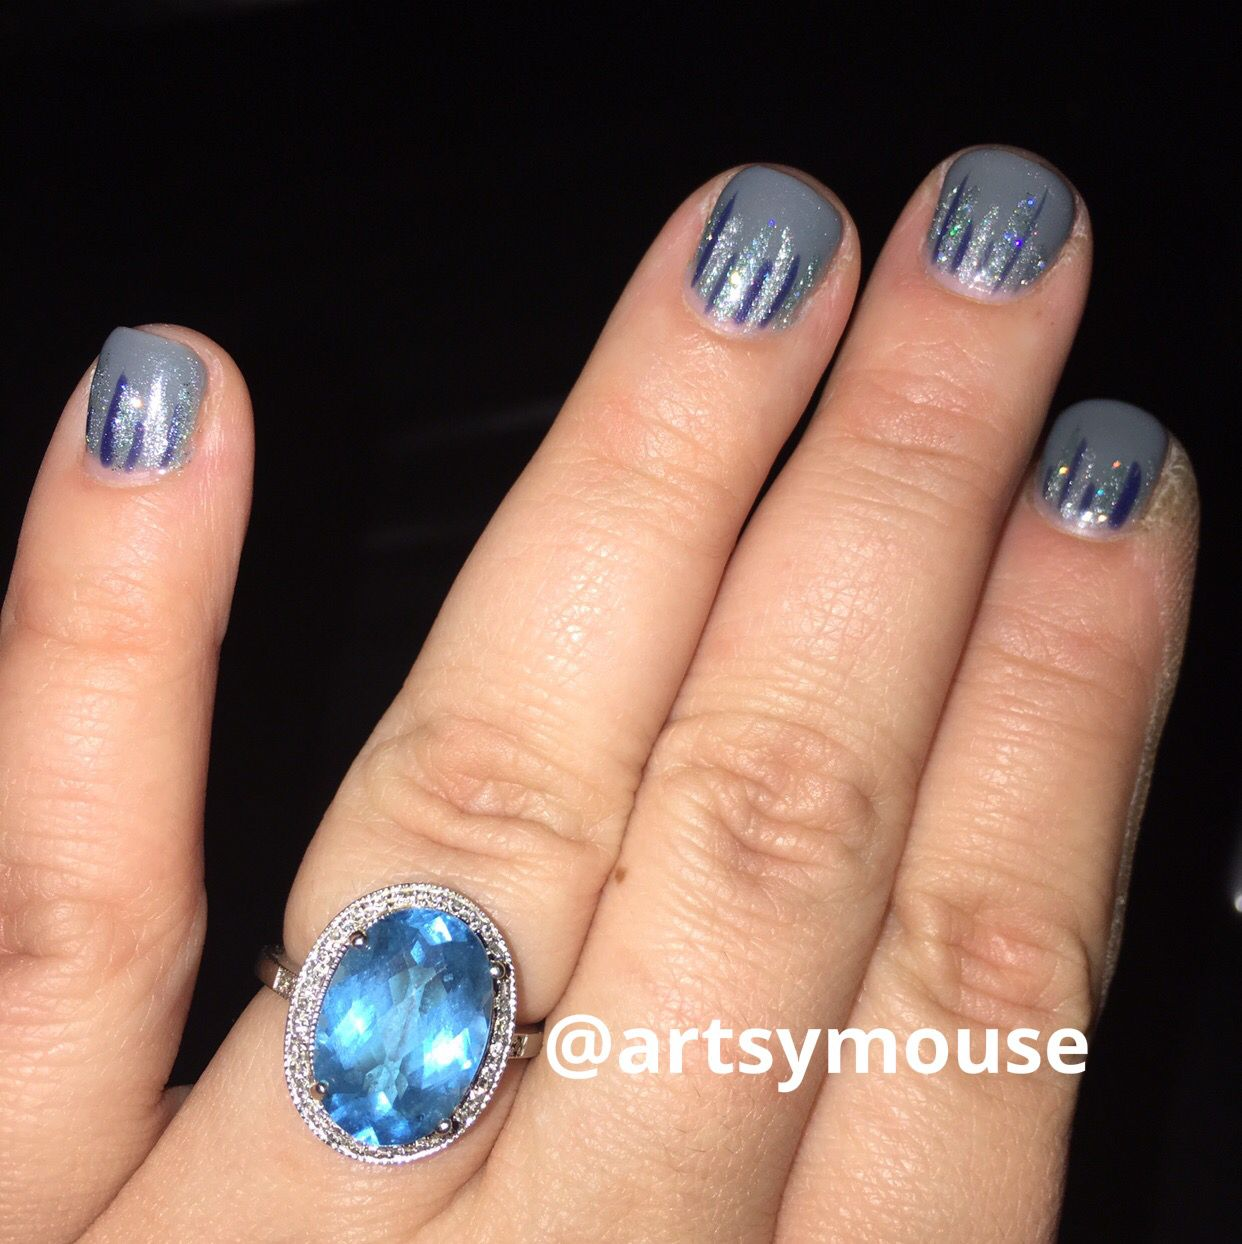 Frozen nails. Winter nails. Blue nails. Icicle nails. Frosted nails. Glittery nails.